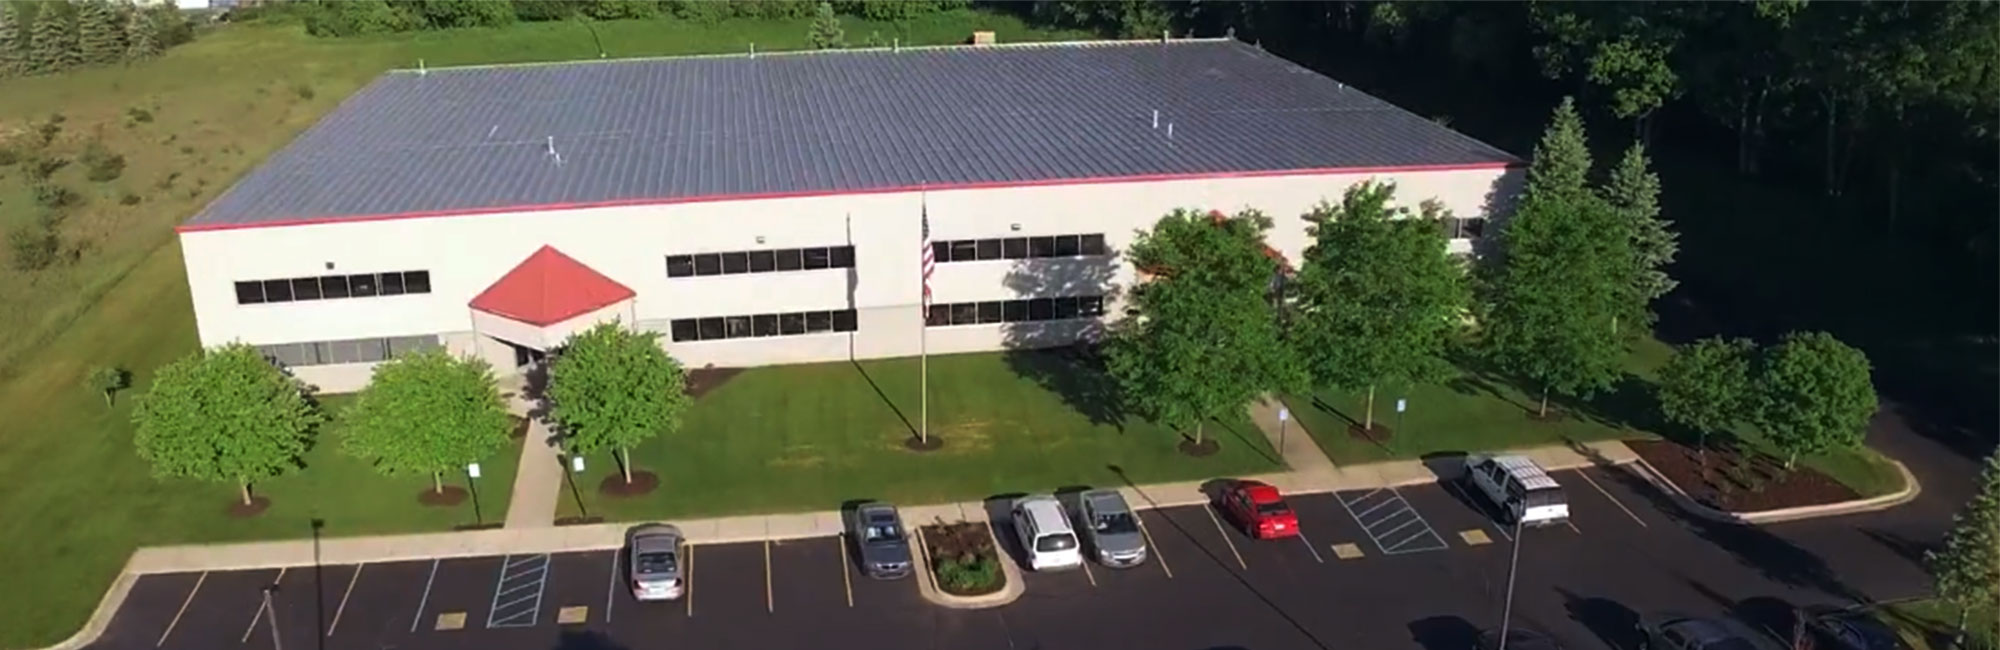 FabX Building aerial view